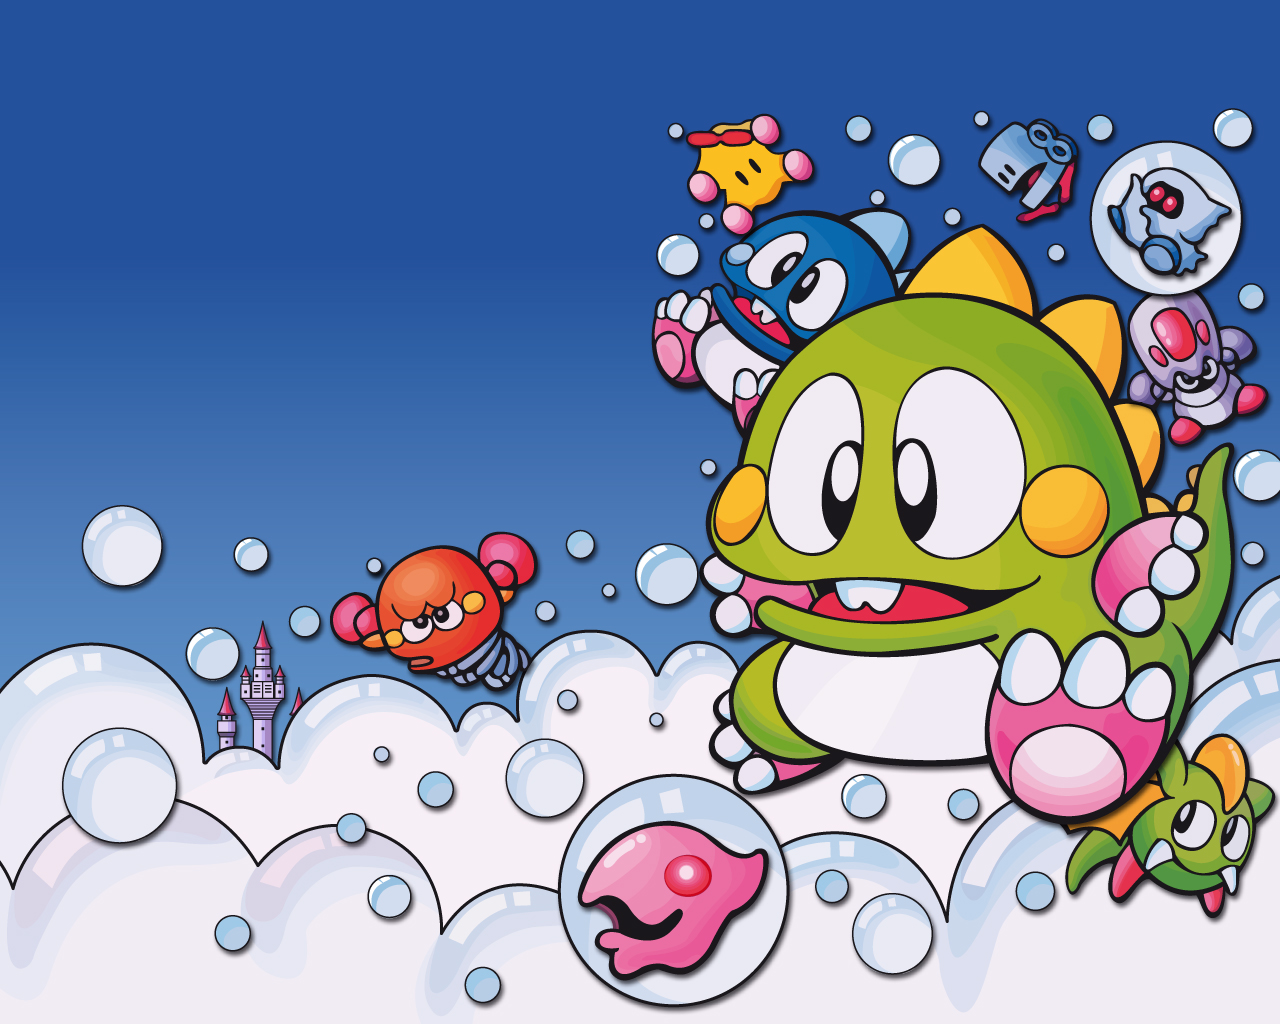 bubble_bobble_wallpaper_01_by_cybaBABE